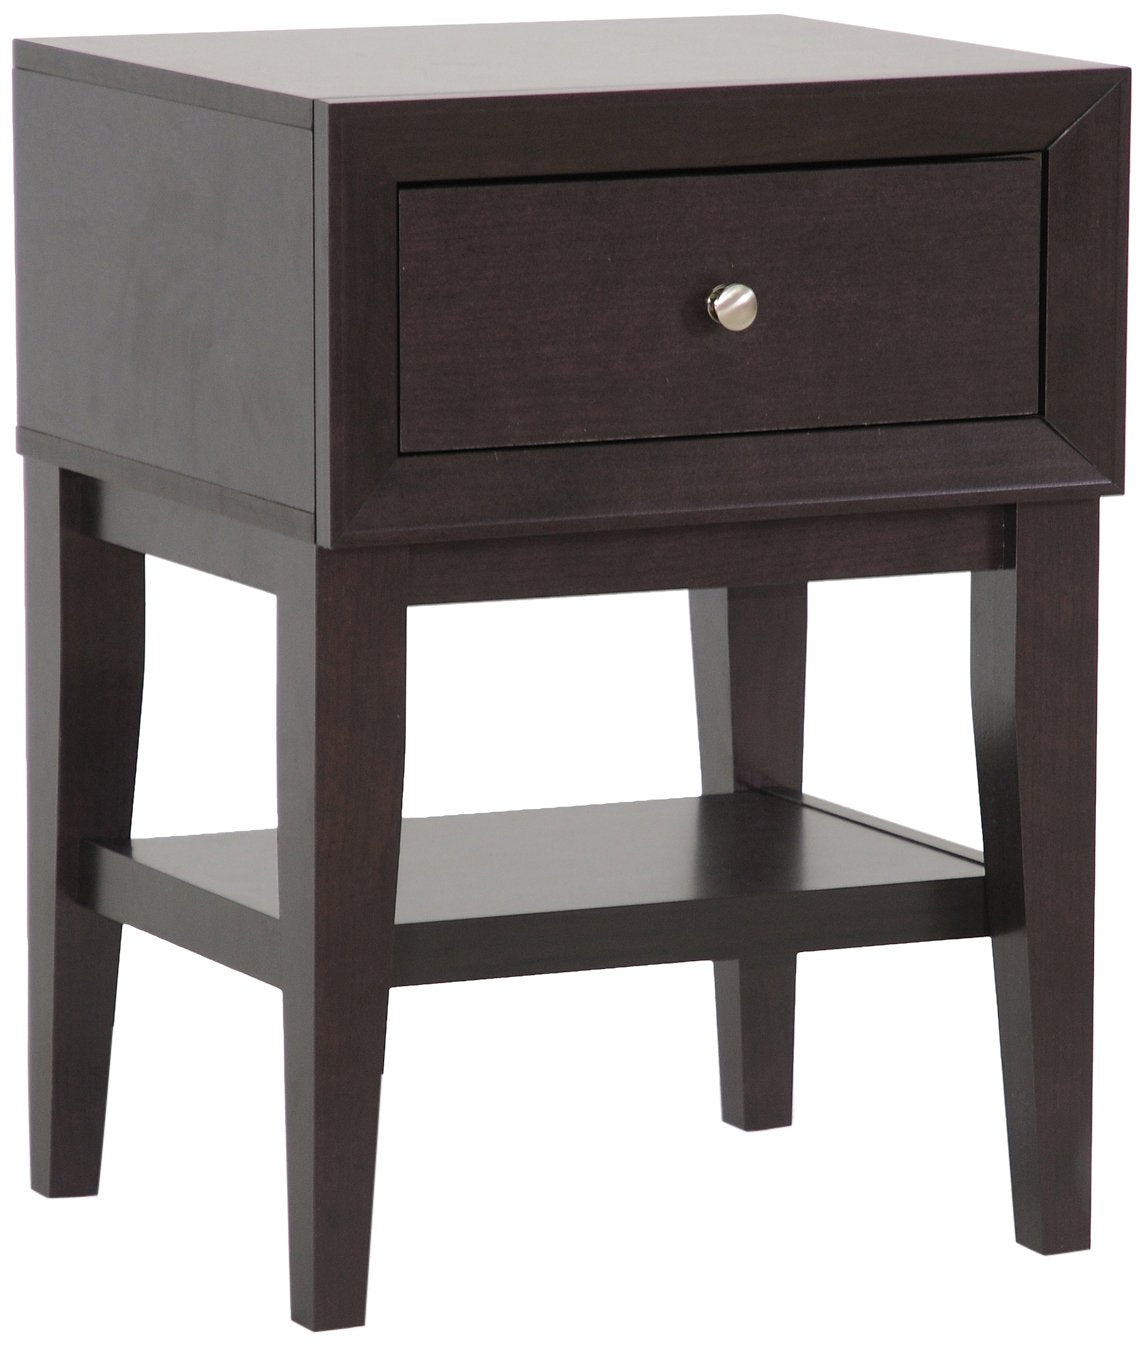 Gaston Modern Accent Table and Nightstand, Brown